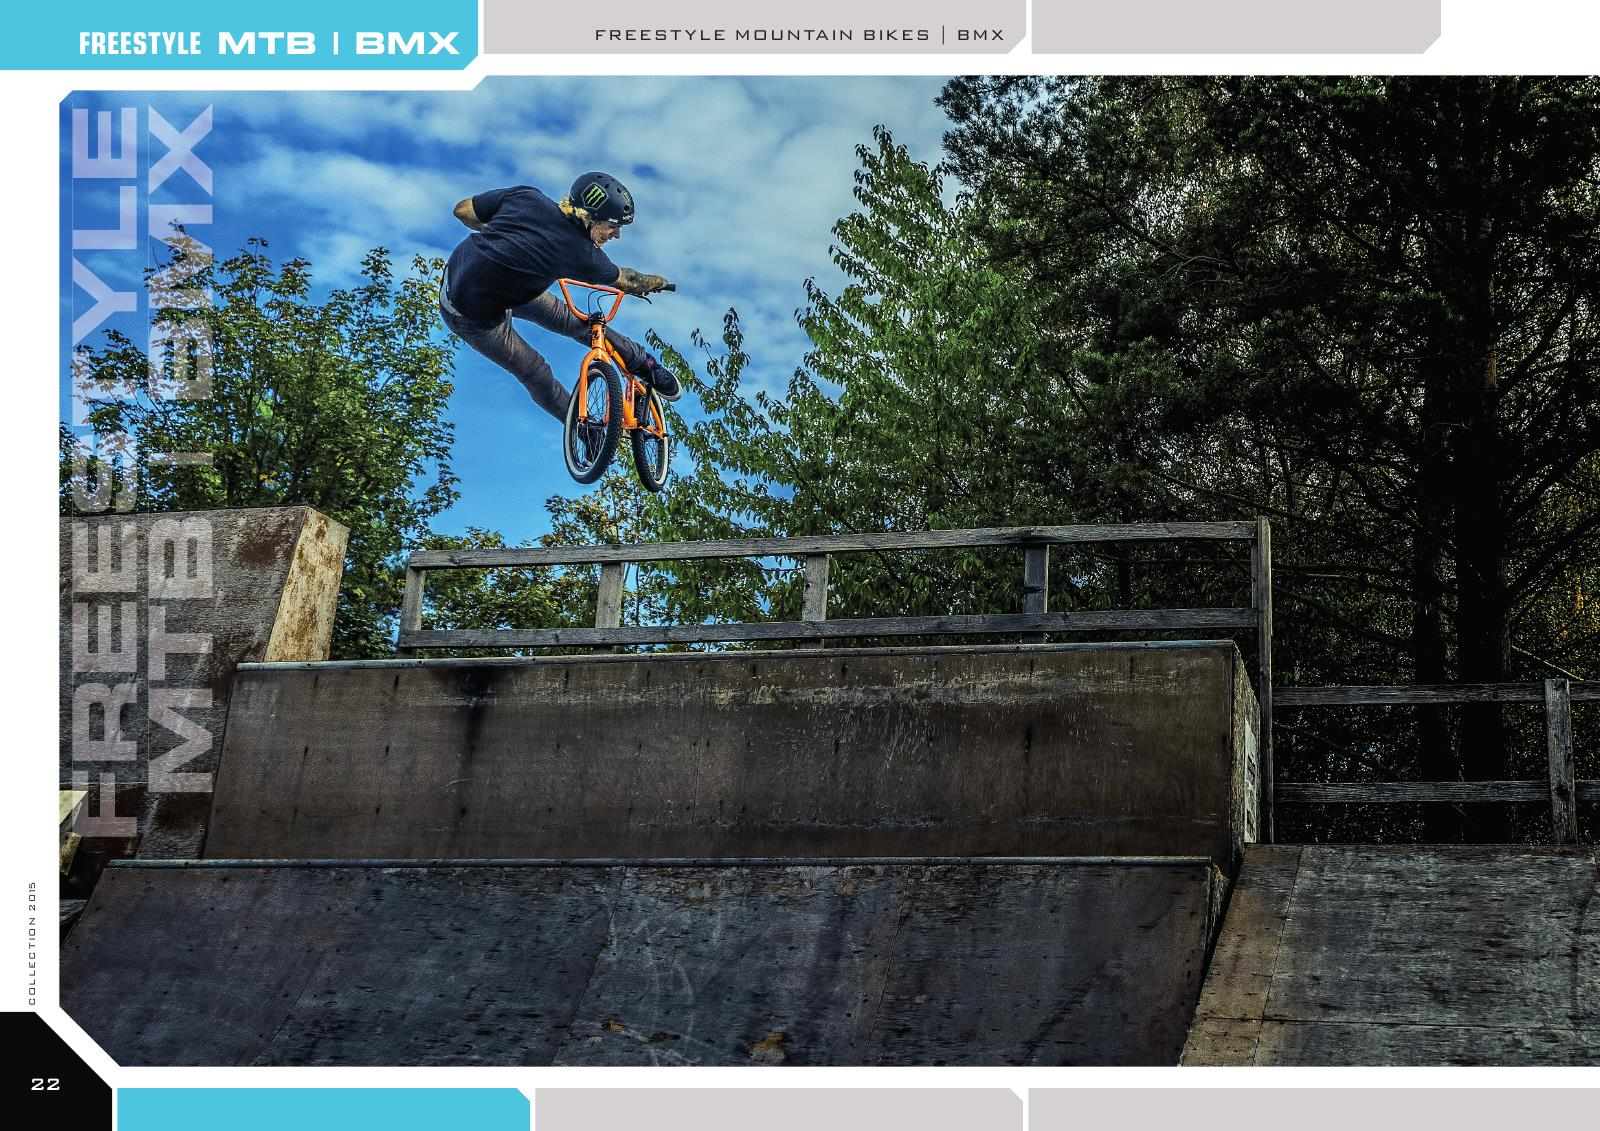 Freestyle MTB | BMX - freestyle mountain bikes | BMX